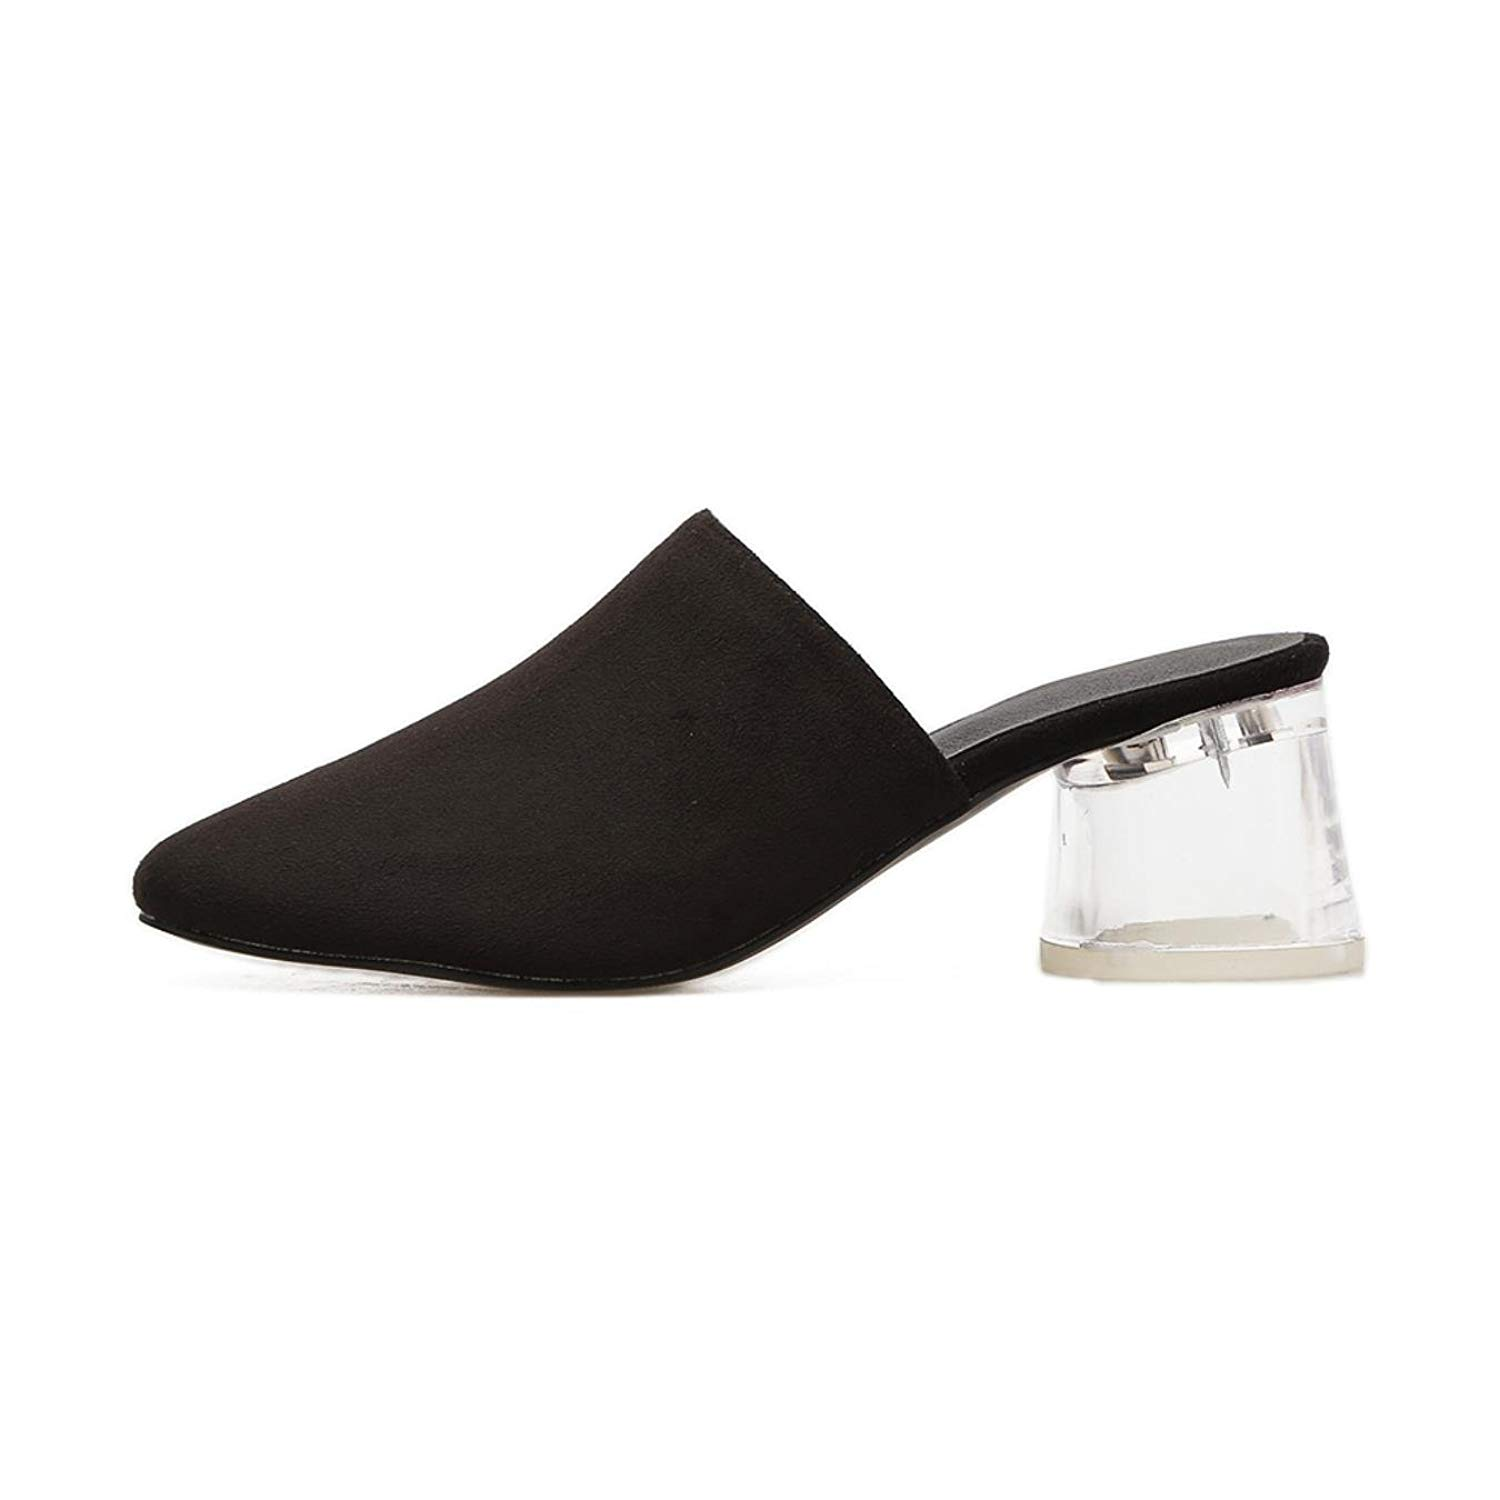 dfe35538f71 Cheap High Heel Slides, find High Heel Slides deals on line at ...